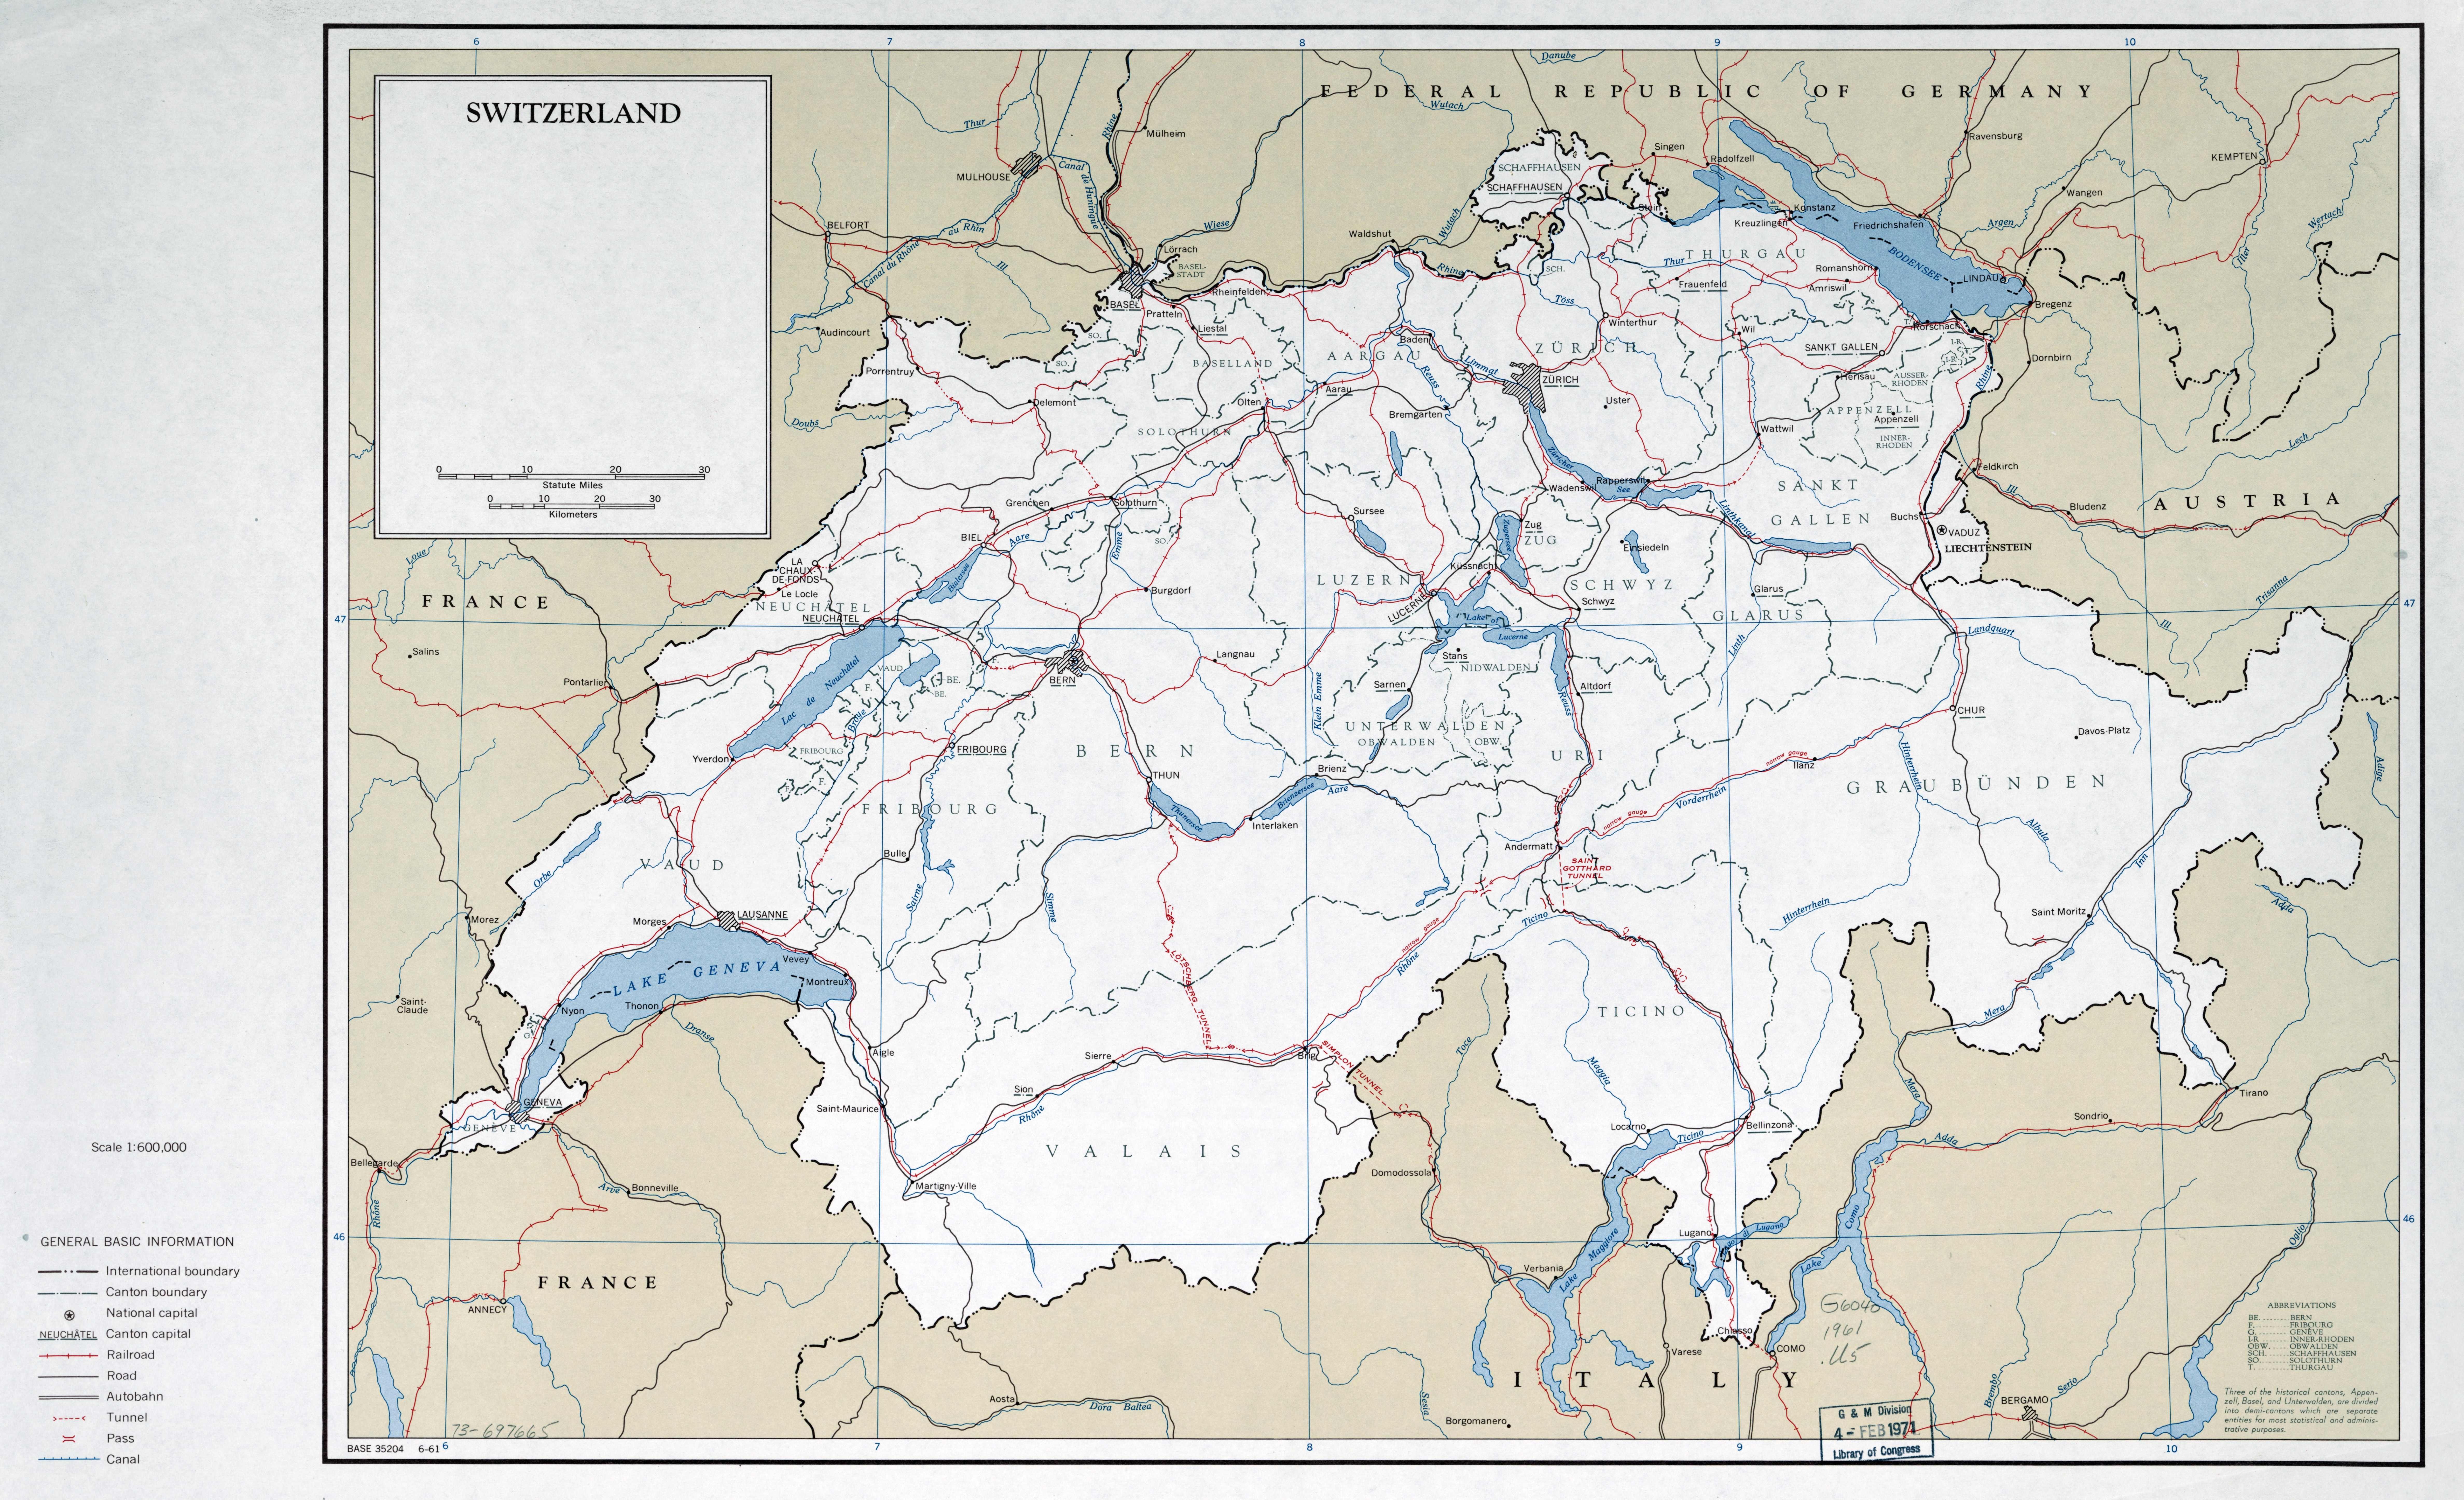 Description Large Scale Political And Administrative Map Of Switzerland With Roads Railroads And Major Cities 1961